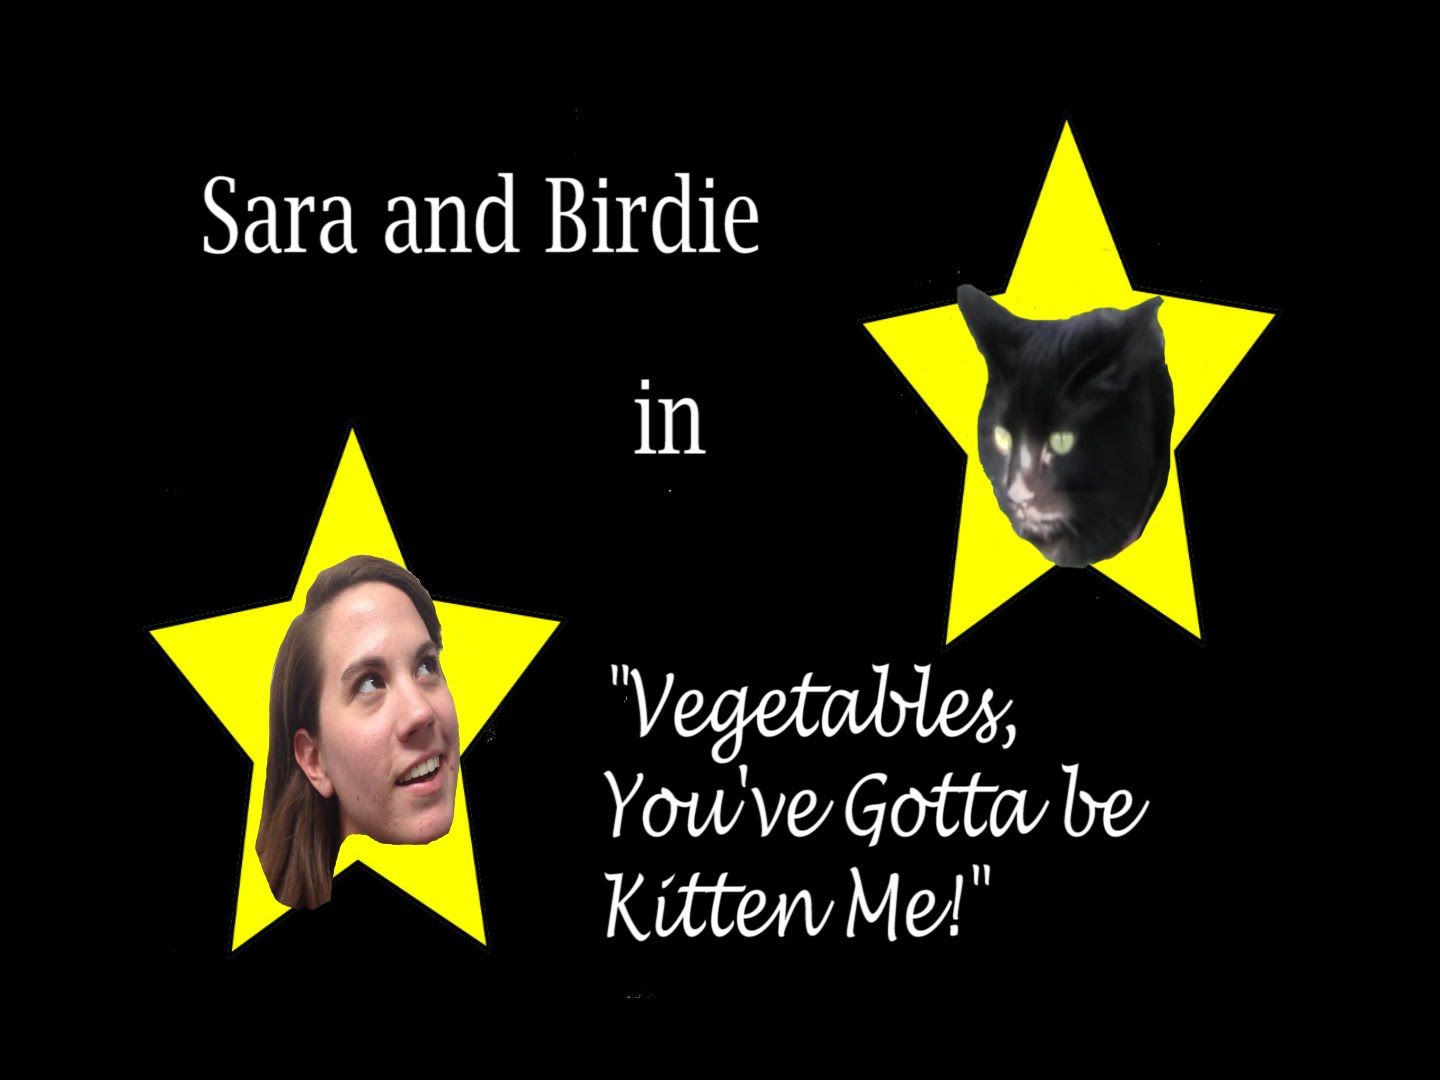 When you put Sara, a vegetarian, and Birdie, an average carnivorous cat, in the same house, you sure can bet there will be crazy shenanigans afoot. How will this odd couple ever decide what to eat?